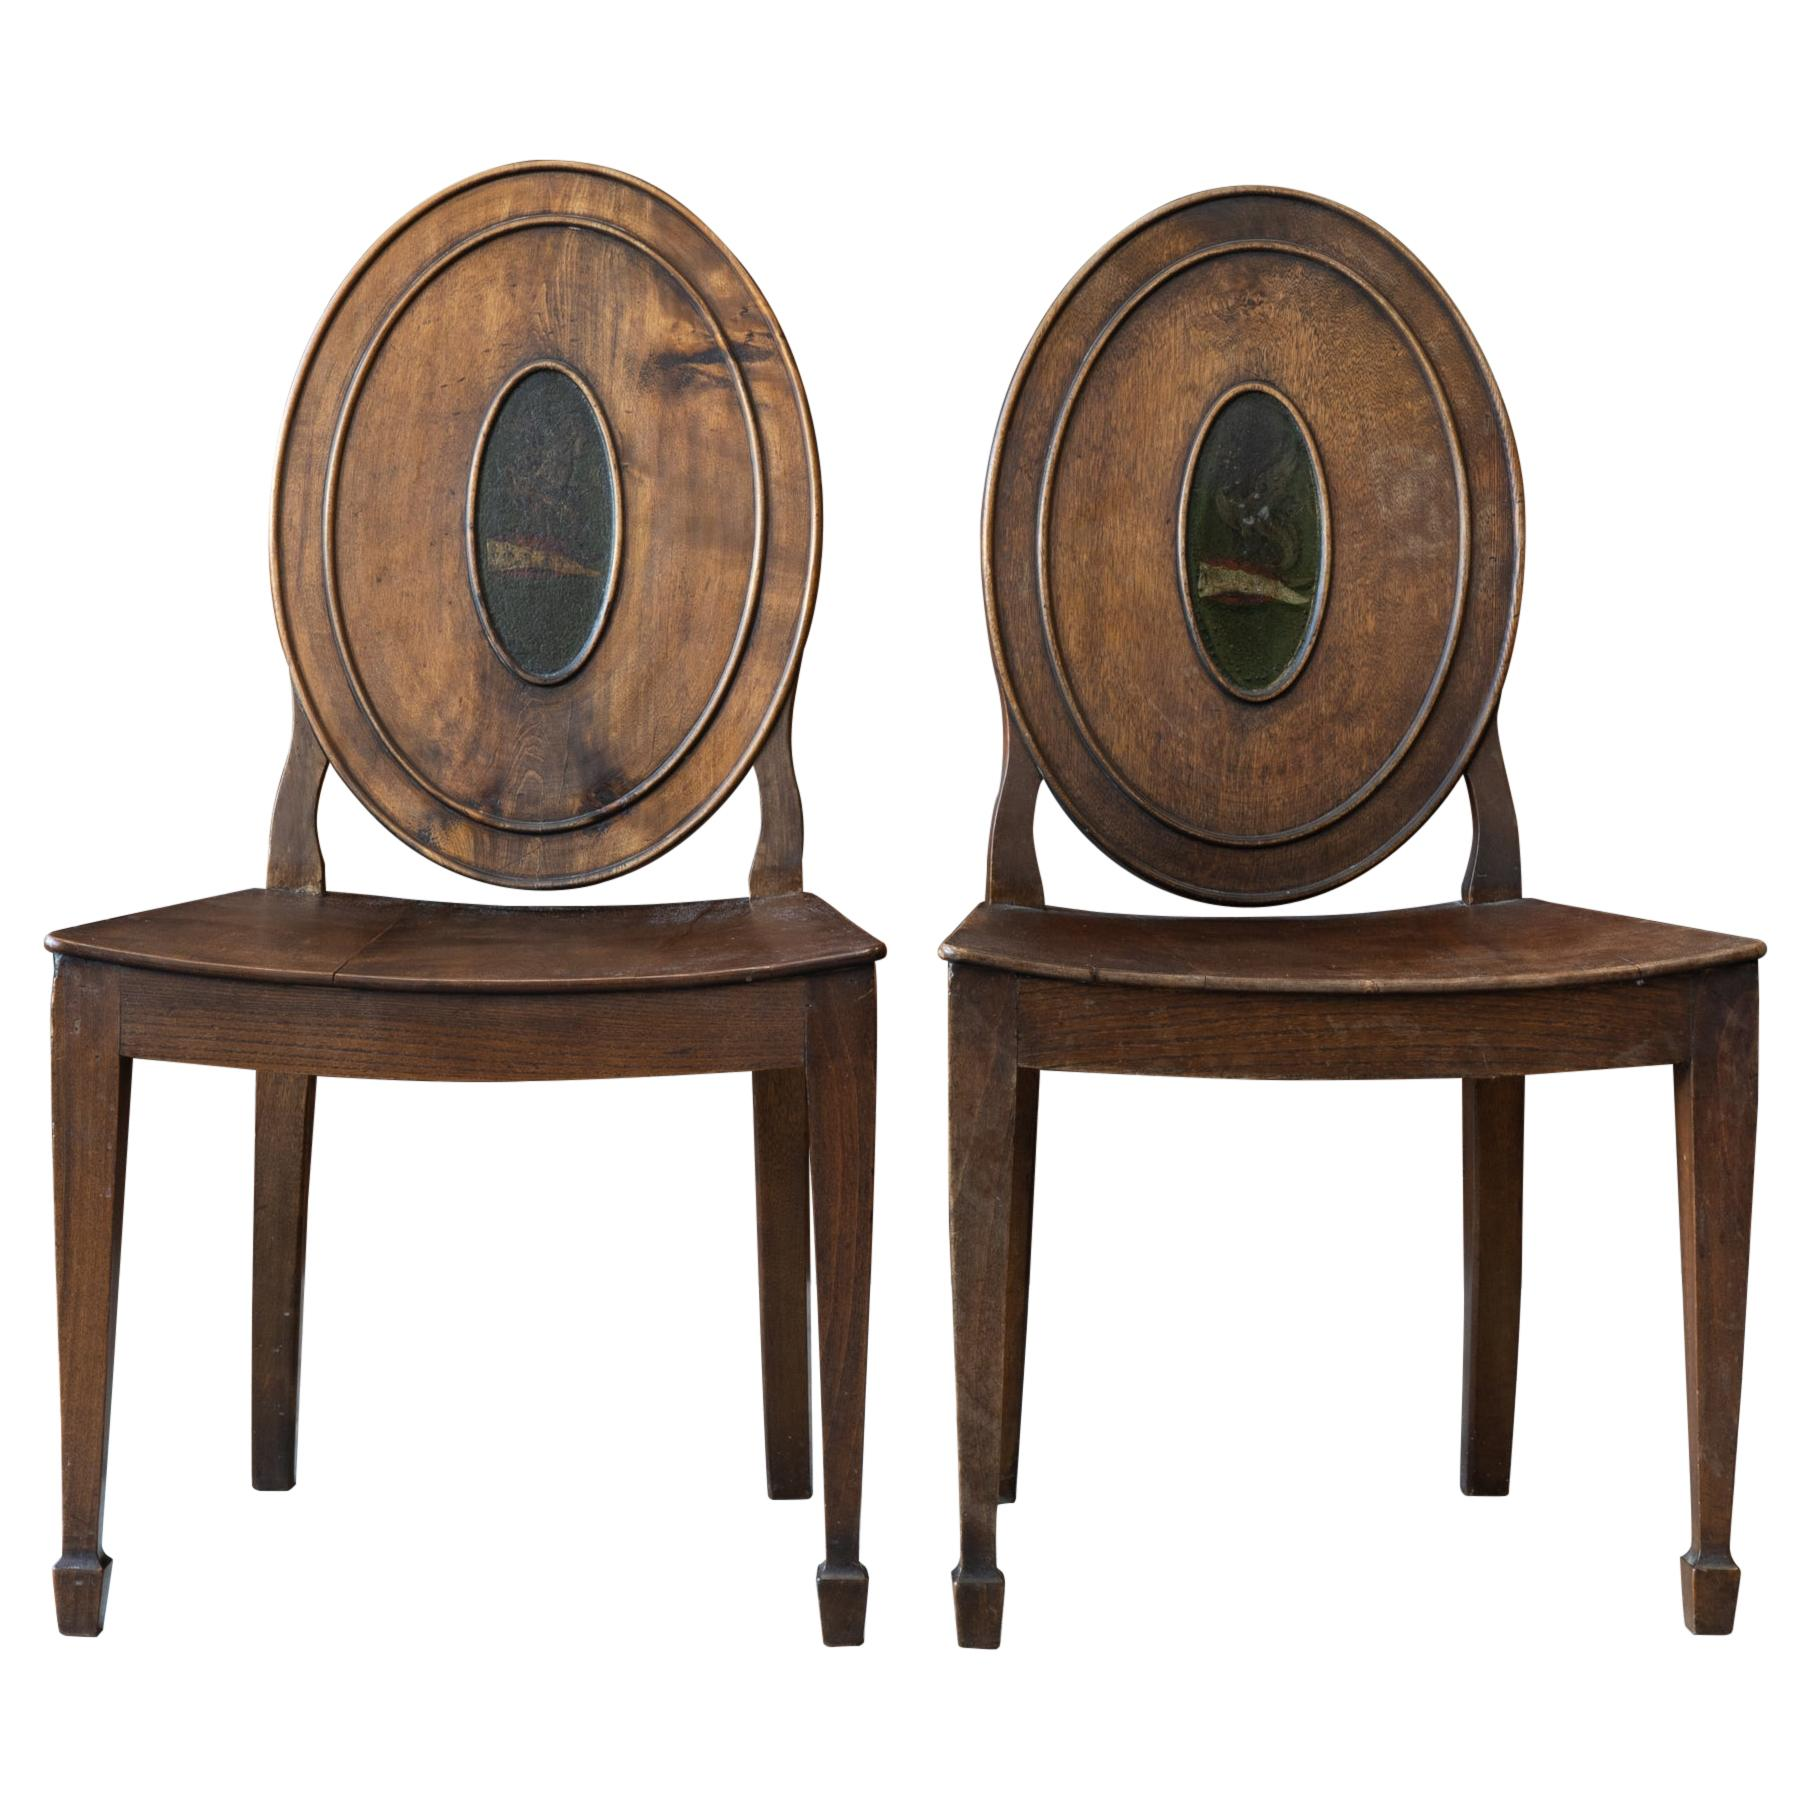 Pair of Late 18th Century Hall Chairs